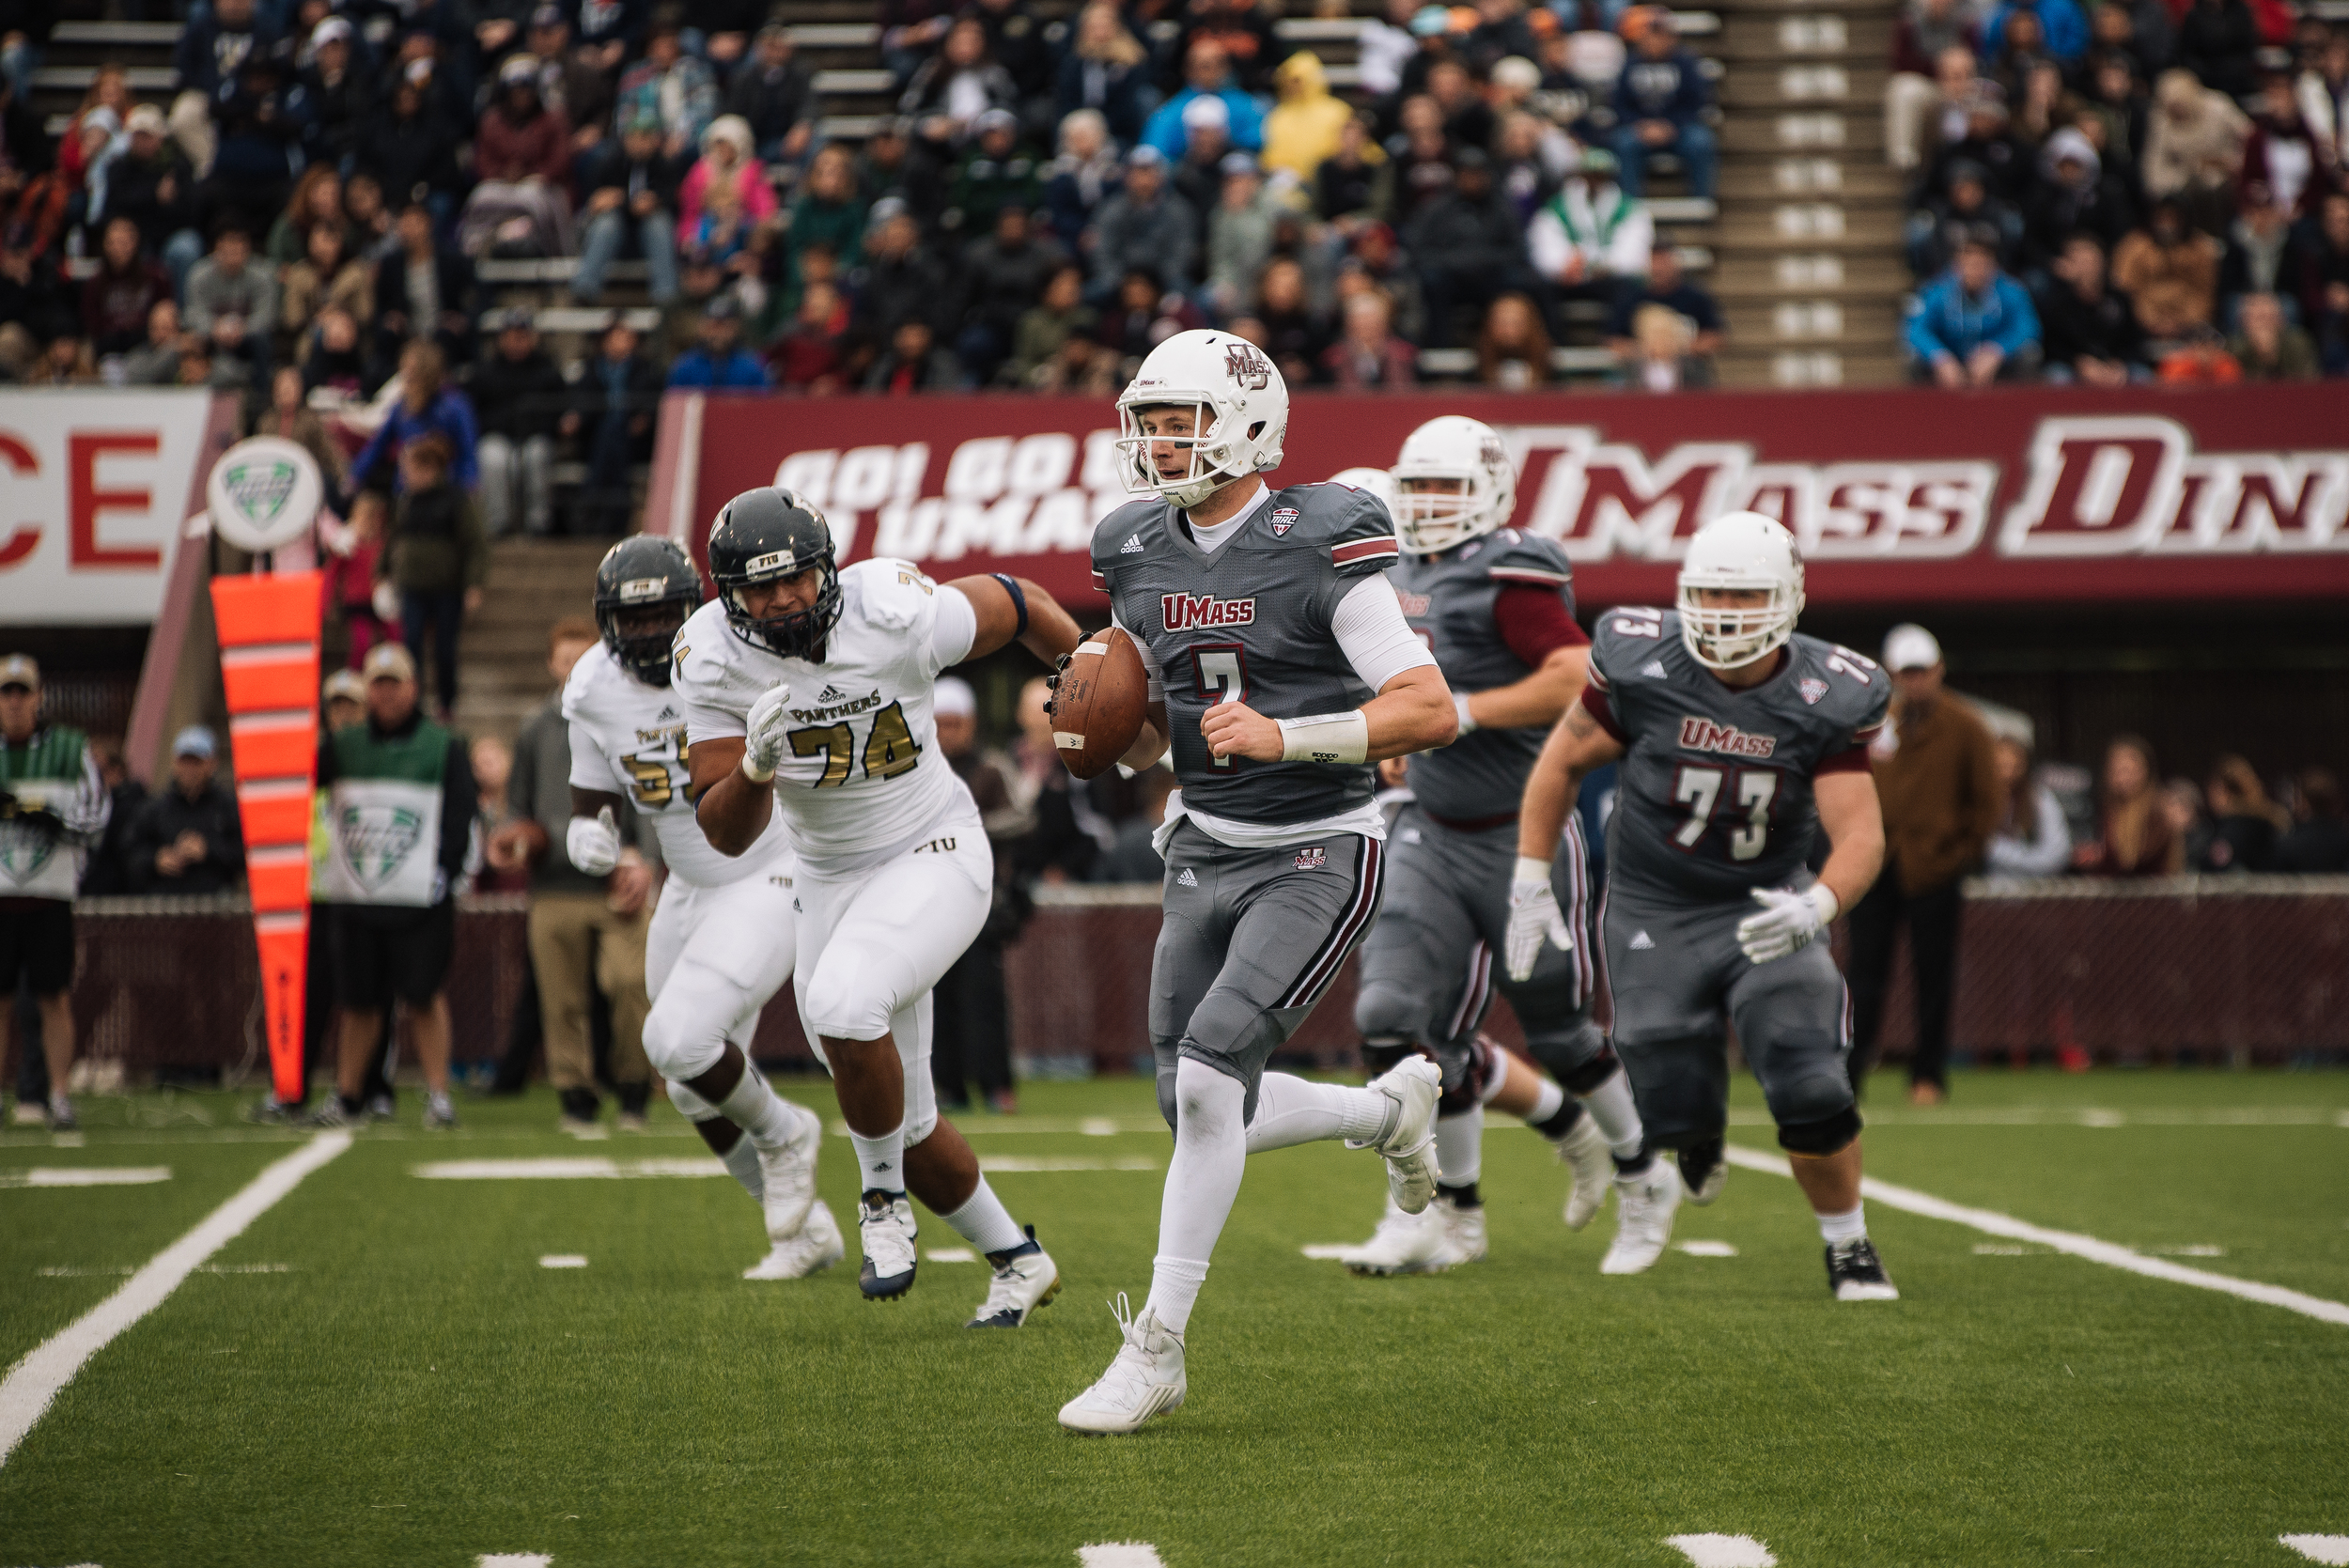 UMass QB Blake Frohnapfel carries the ball. Photo by Judith Gibson-Okunieff